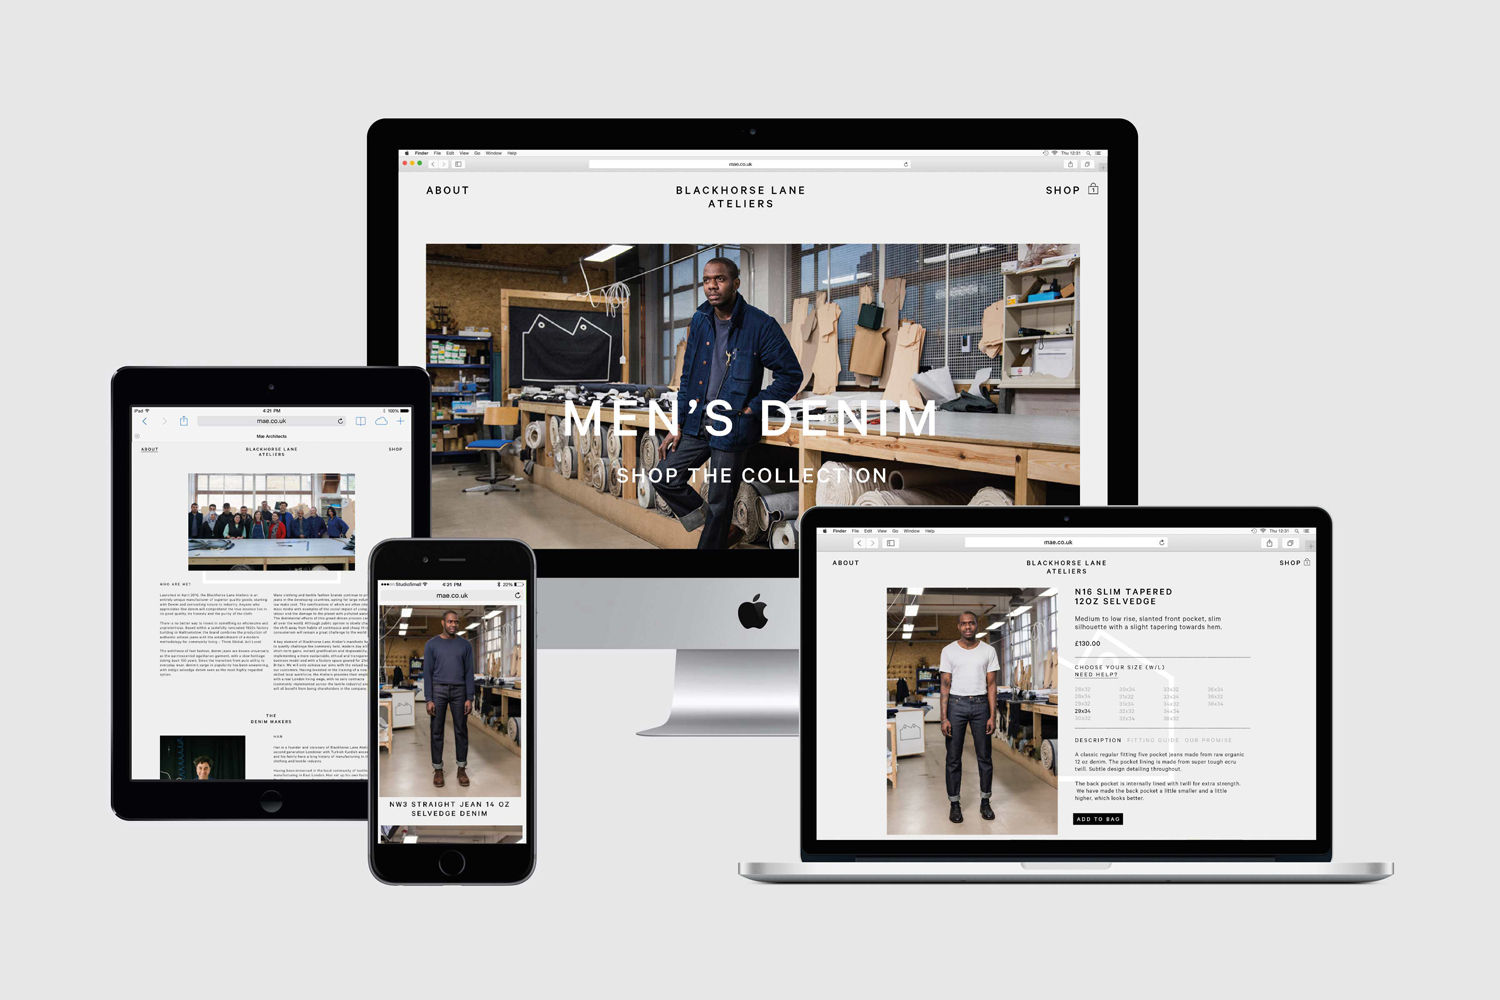 Brand identity and website by StudioSmall for premium selvedge and organic raw denim jeans brand Blackhorse Lane Ateliers.